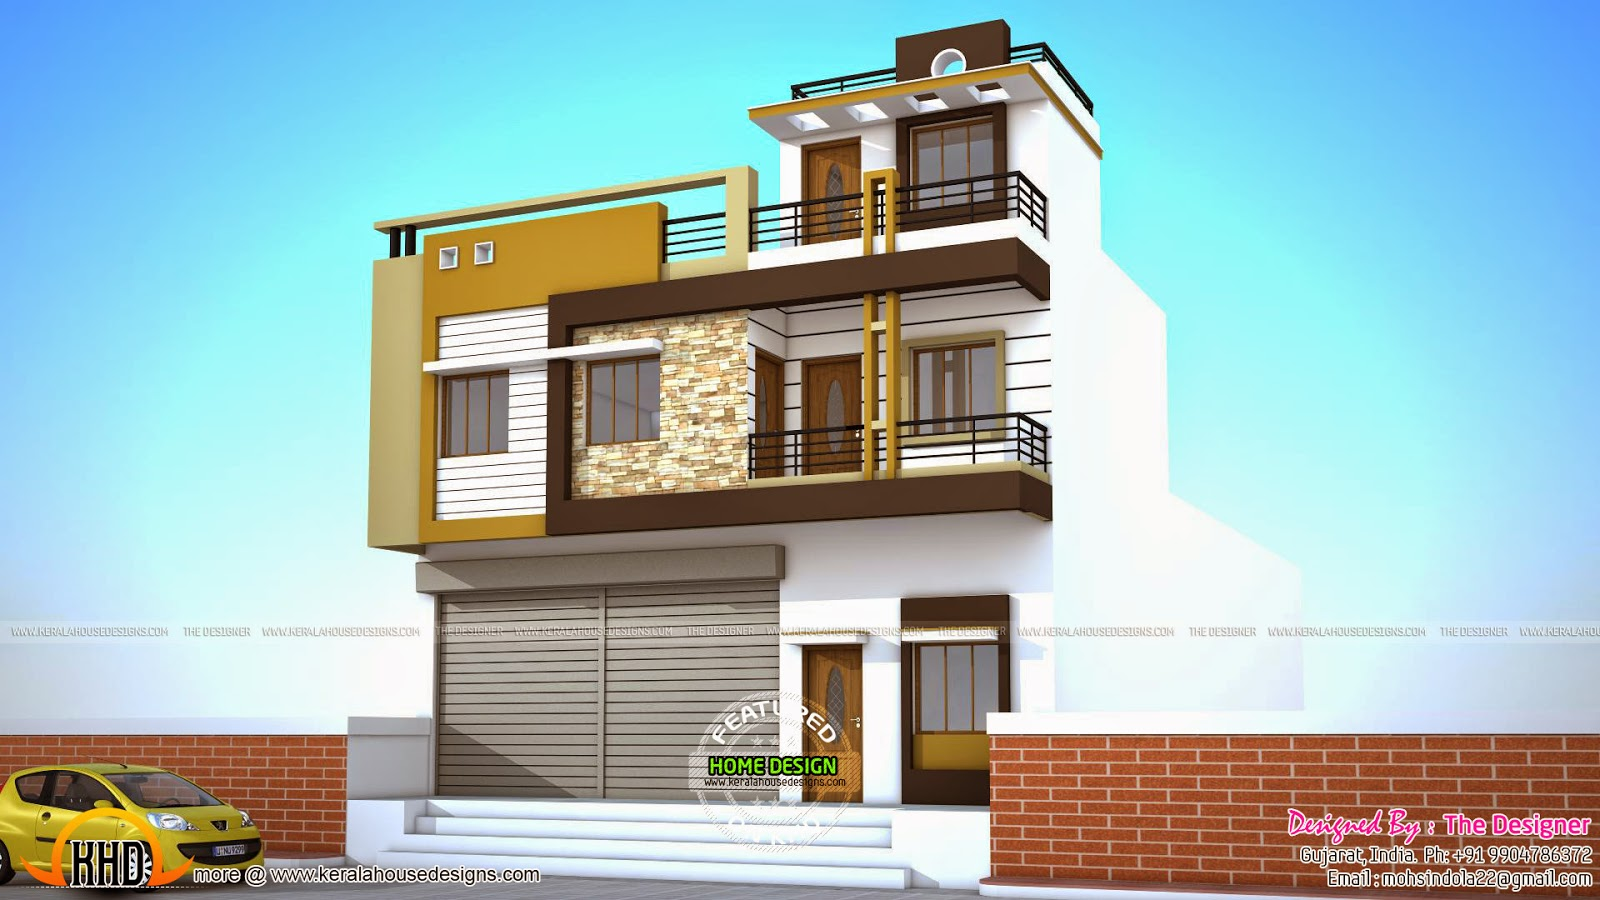 2 house plans with shops on ground floor kerala home for House plans and designs